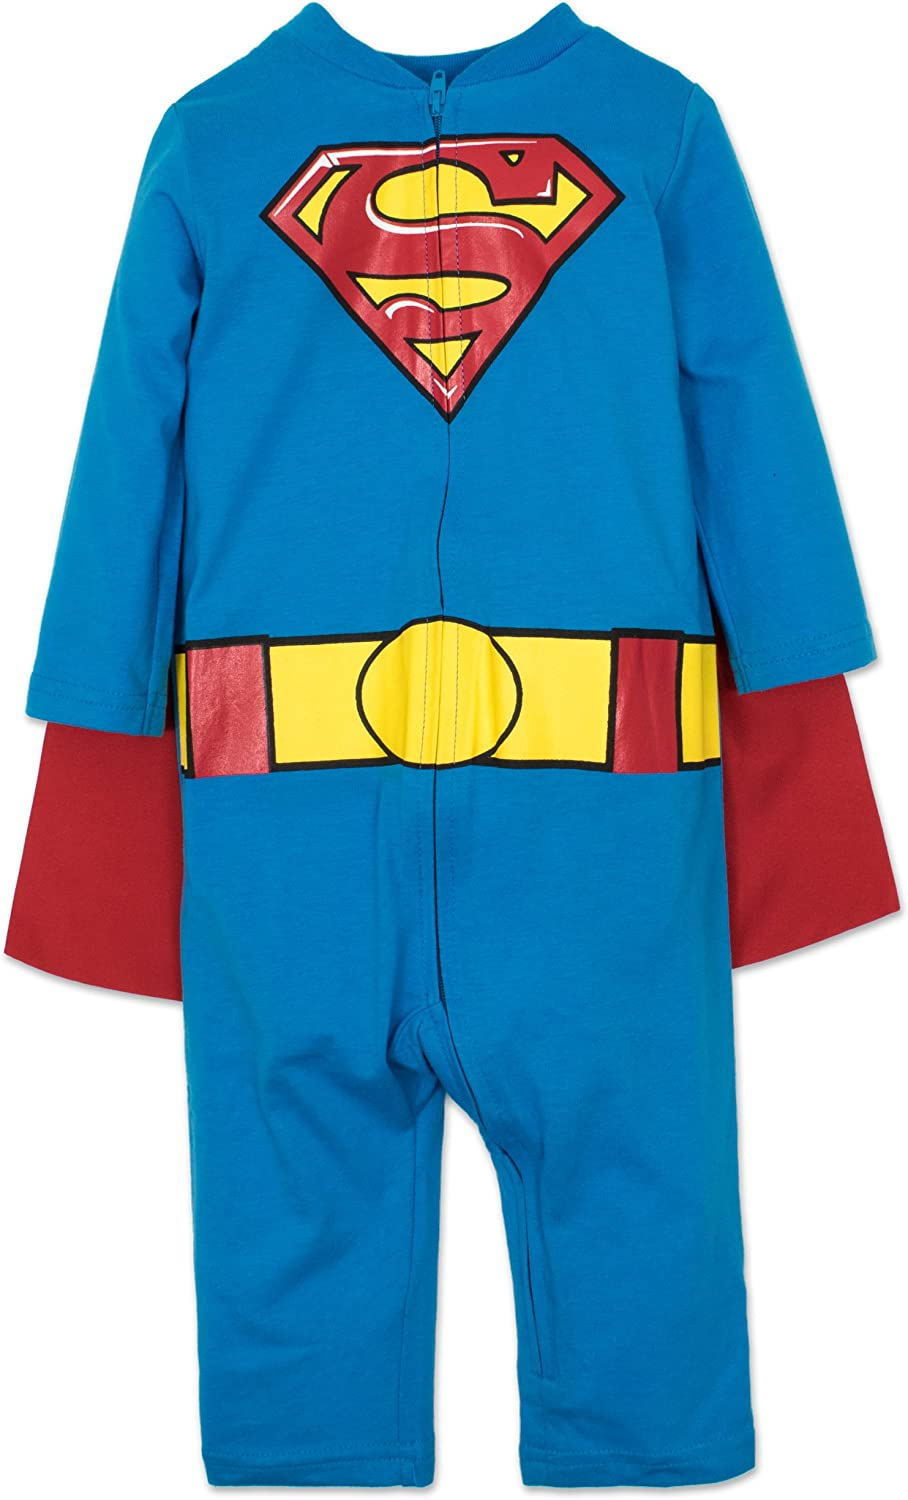 Warner Bros. Batman Superman Baby Coveralls Costume Boys' Free Deluxe Shipping Cheap Bargain Gift with